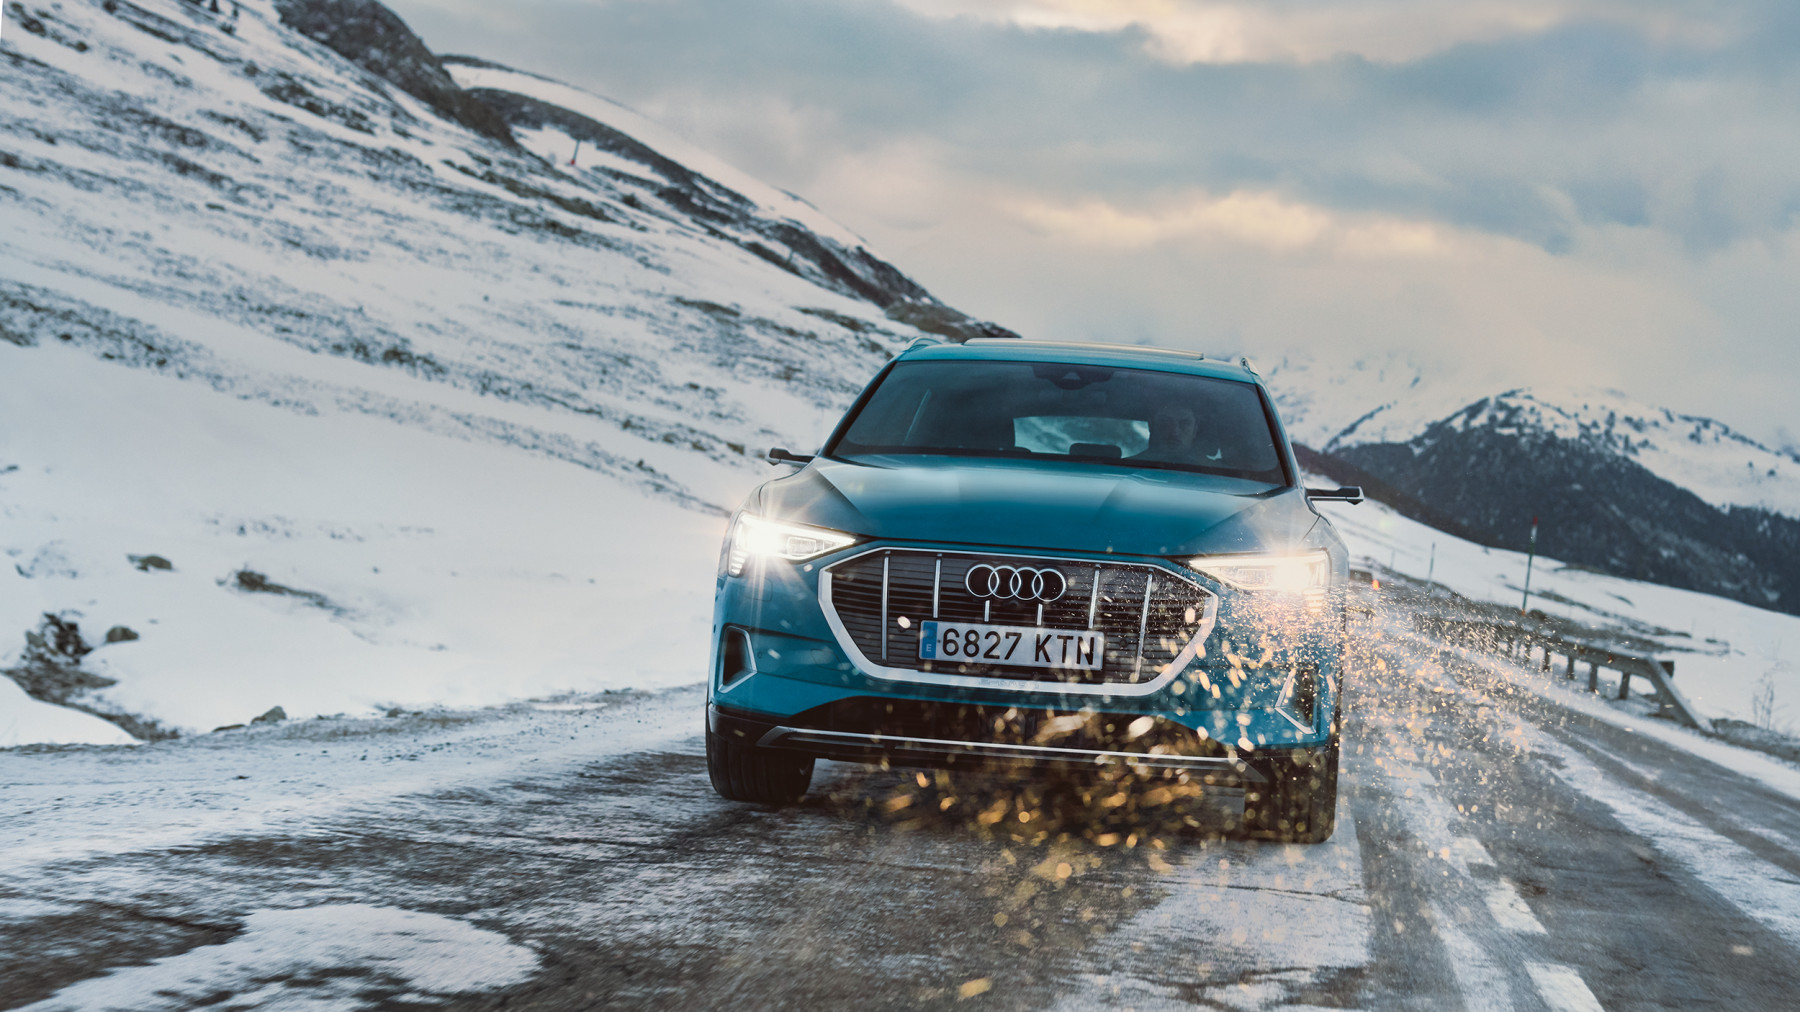 Audi E-Tron winter Barcelona to Baqueira Beret spread 2